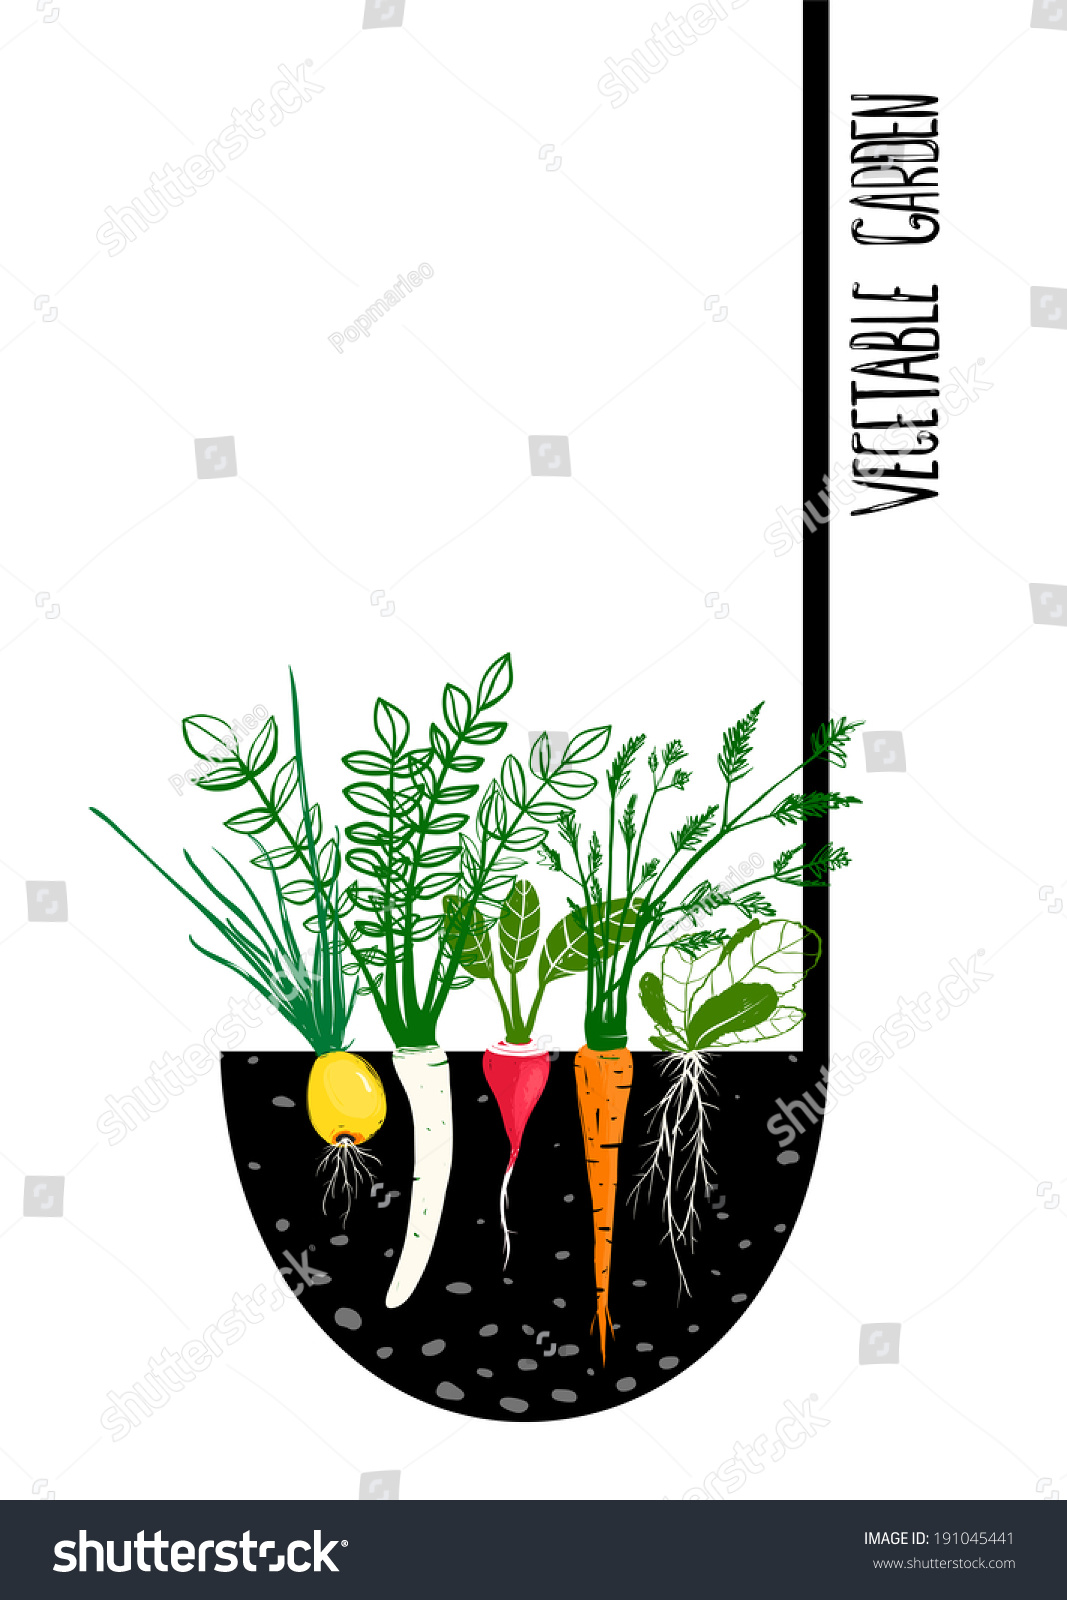 How To Start A Vegetable Garden From Scratch Start A Vegetable Garden From Scratch Indoor